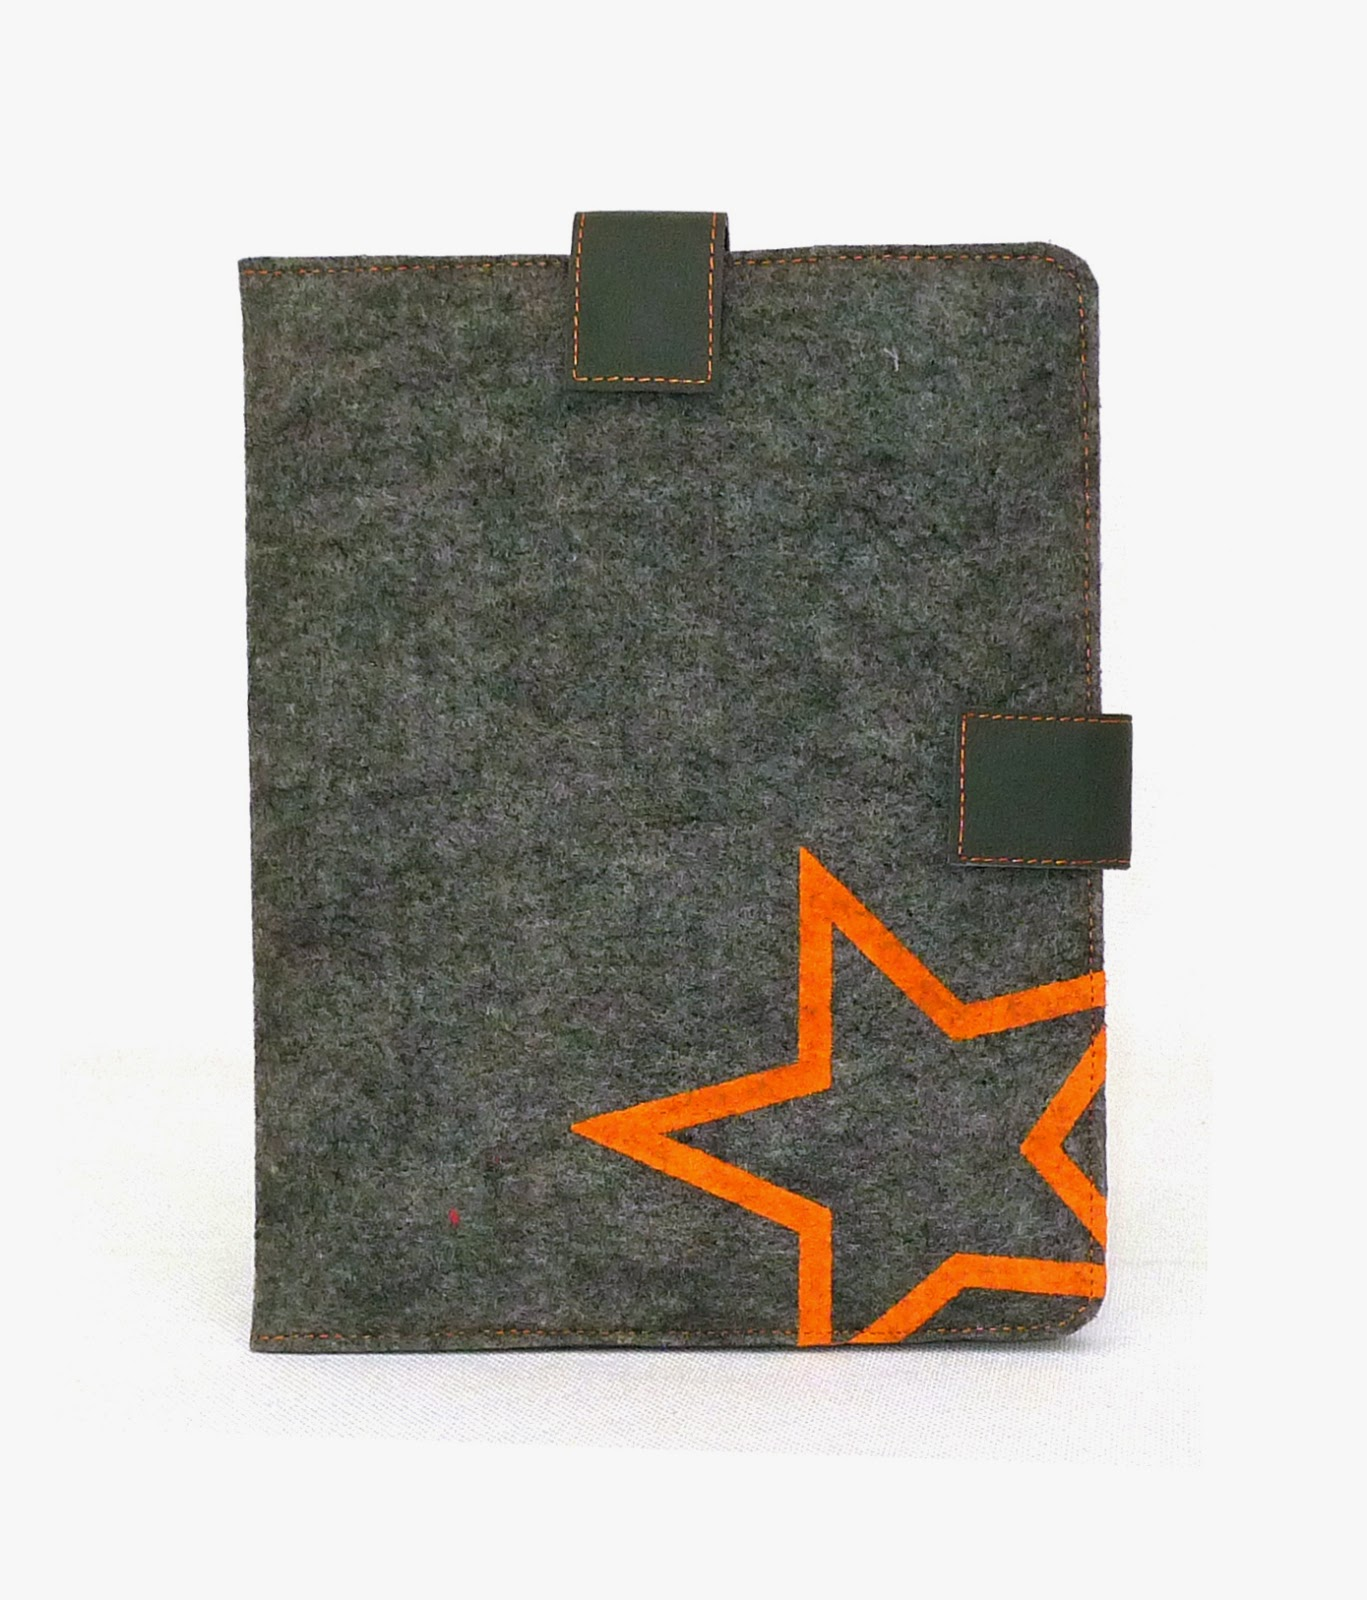 http://hipandblizz.nl/index.php/default/ipad-sleeve-grijs-oranje-gerecycled-fair.html